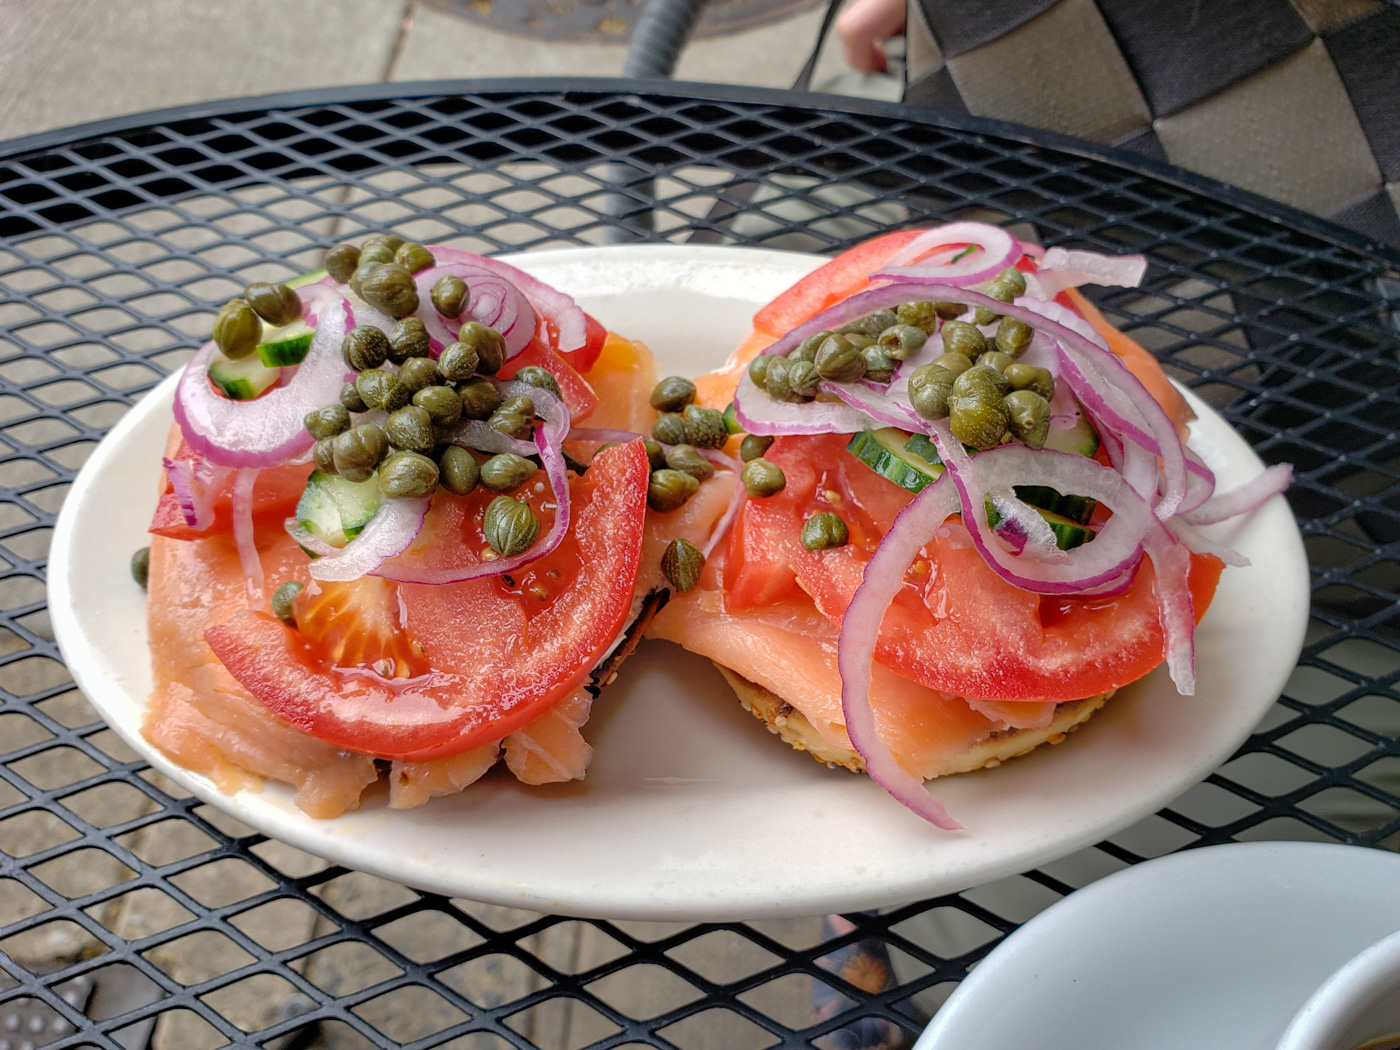 Lox and Cream Cheese at Cafe Lutecia